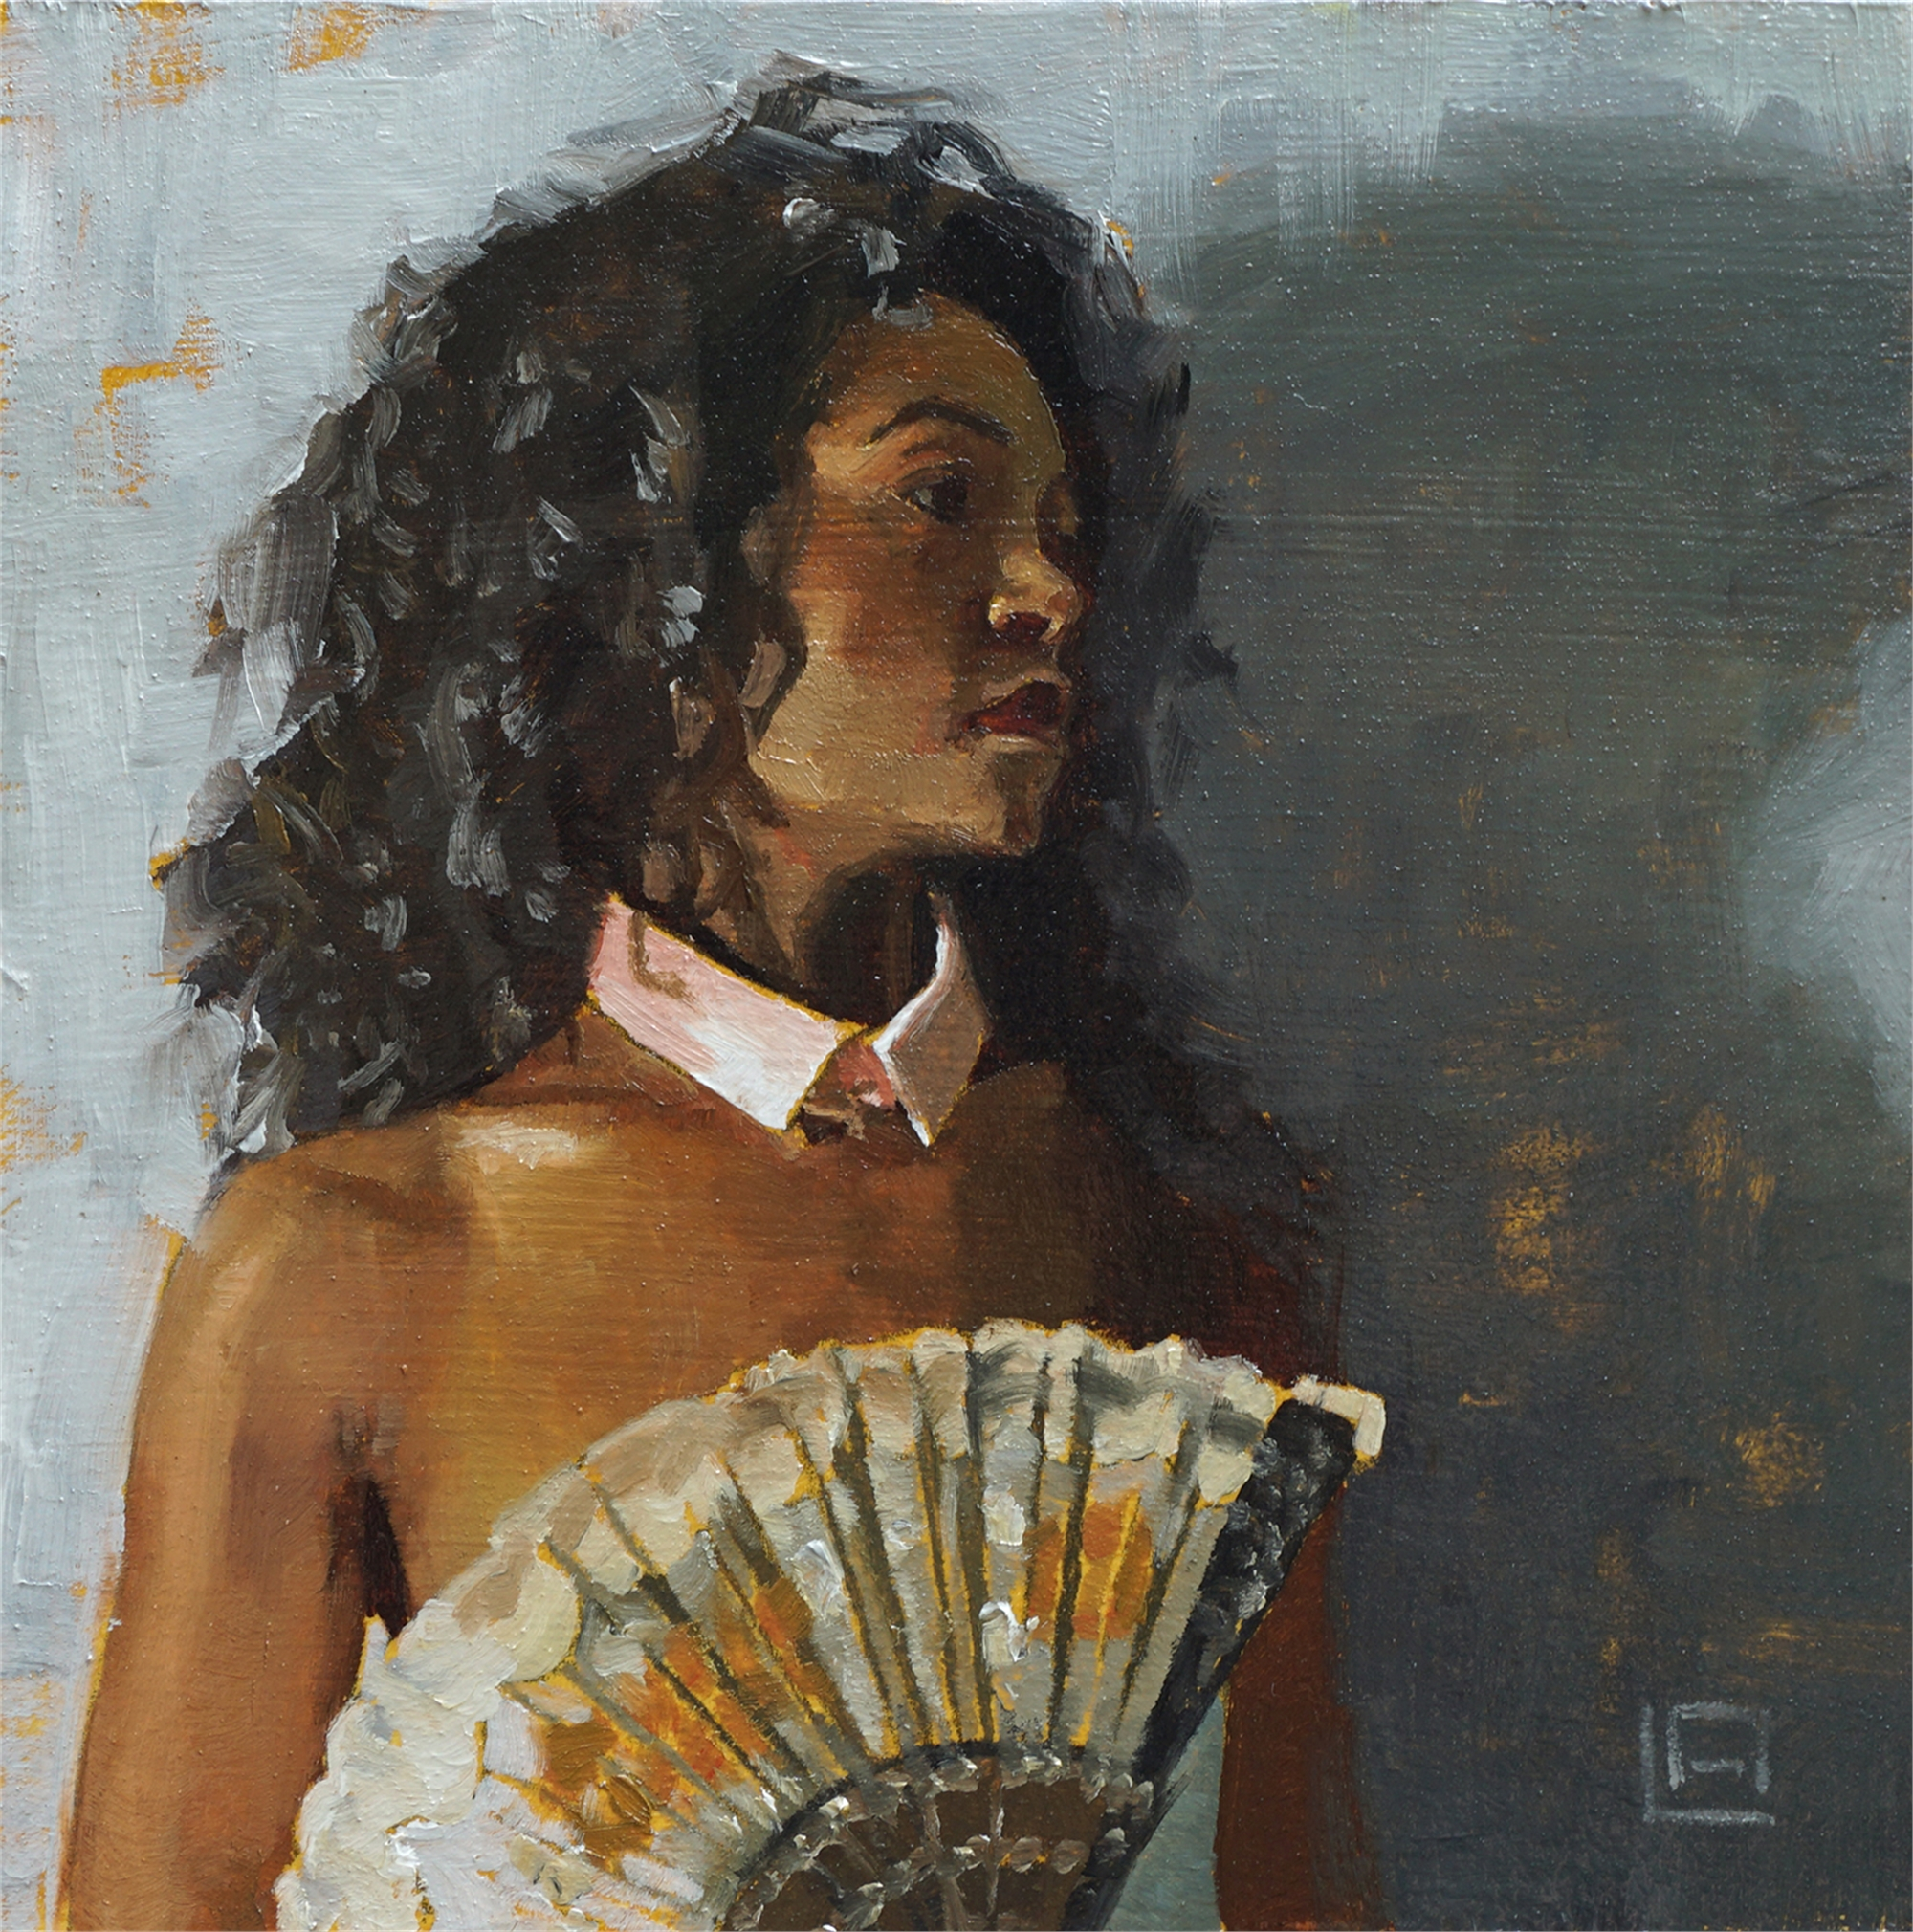 Lady with Fan by Linda Adair